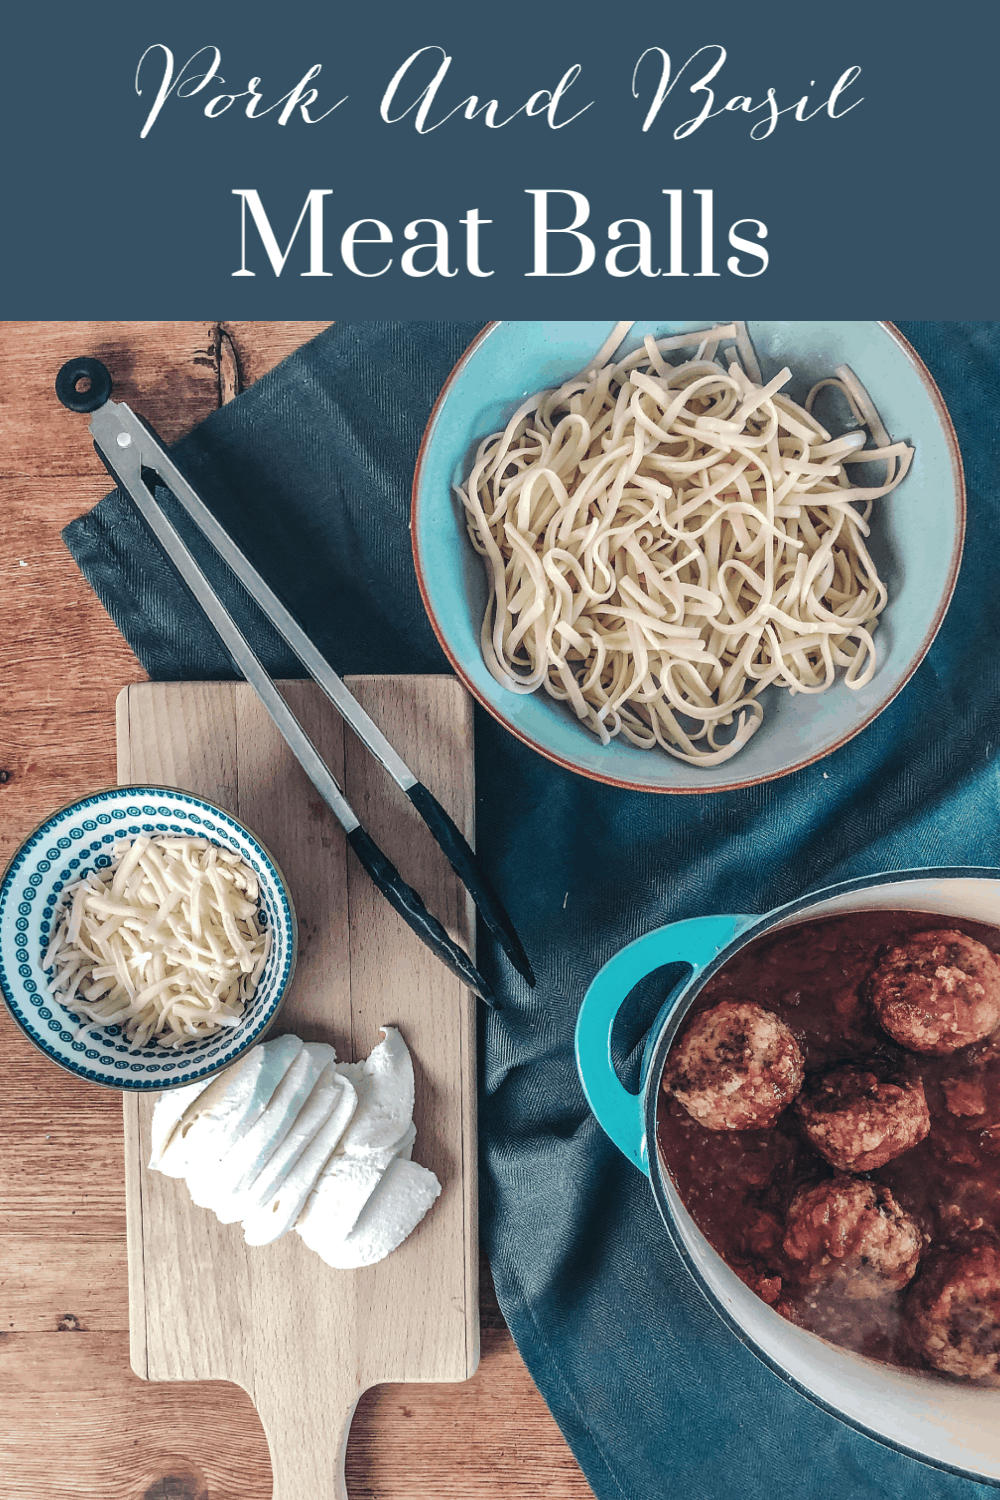 Pork and Basil Meatballs A Quick And Easy Midweek Meal